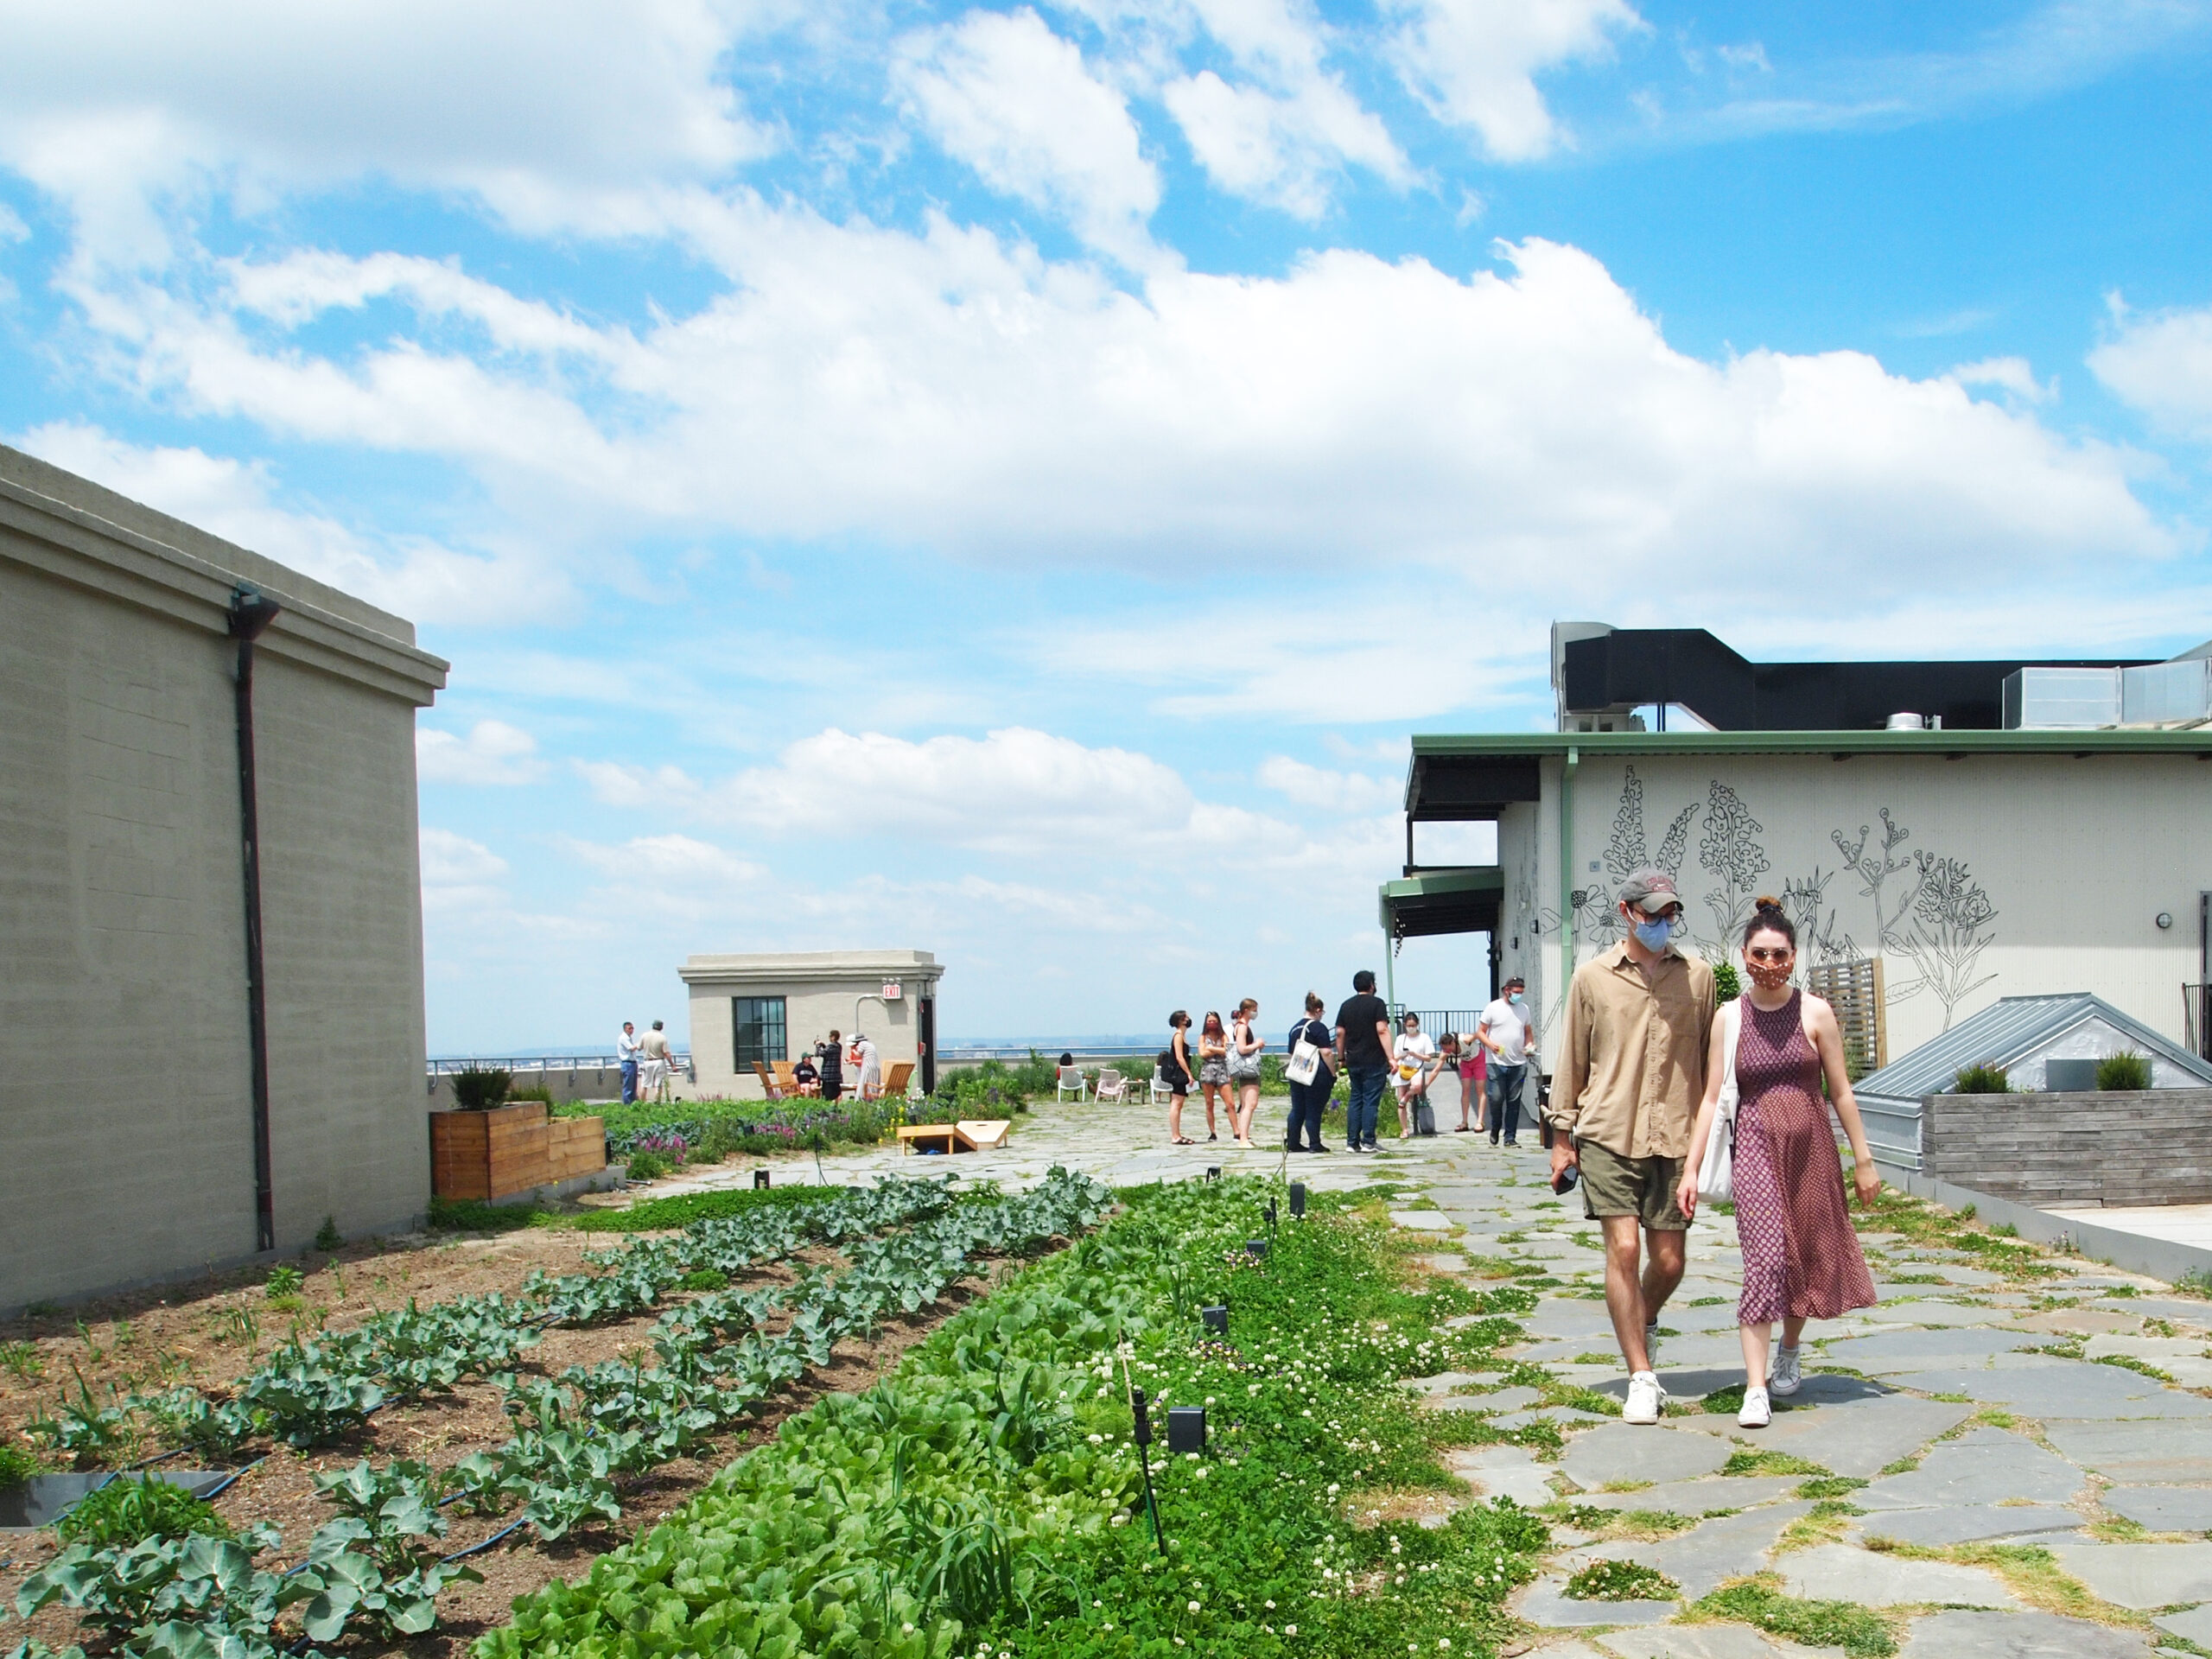 Image of the rooftop farm